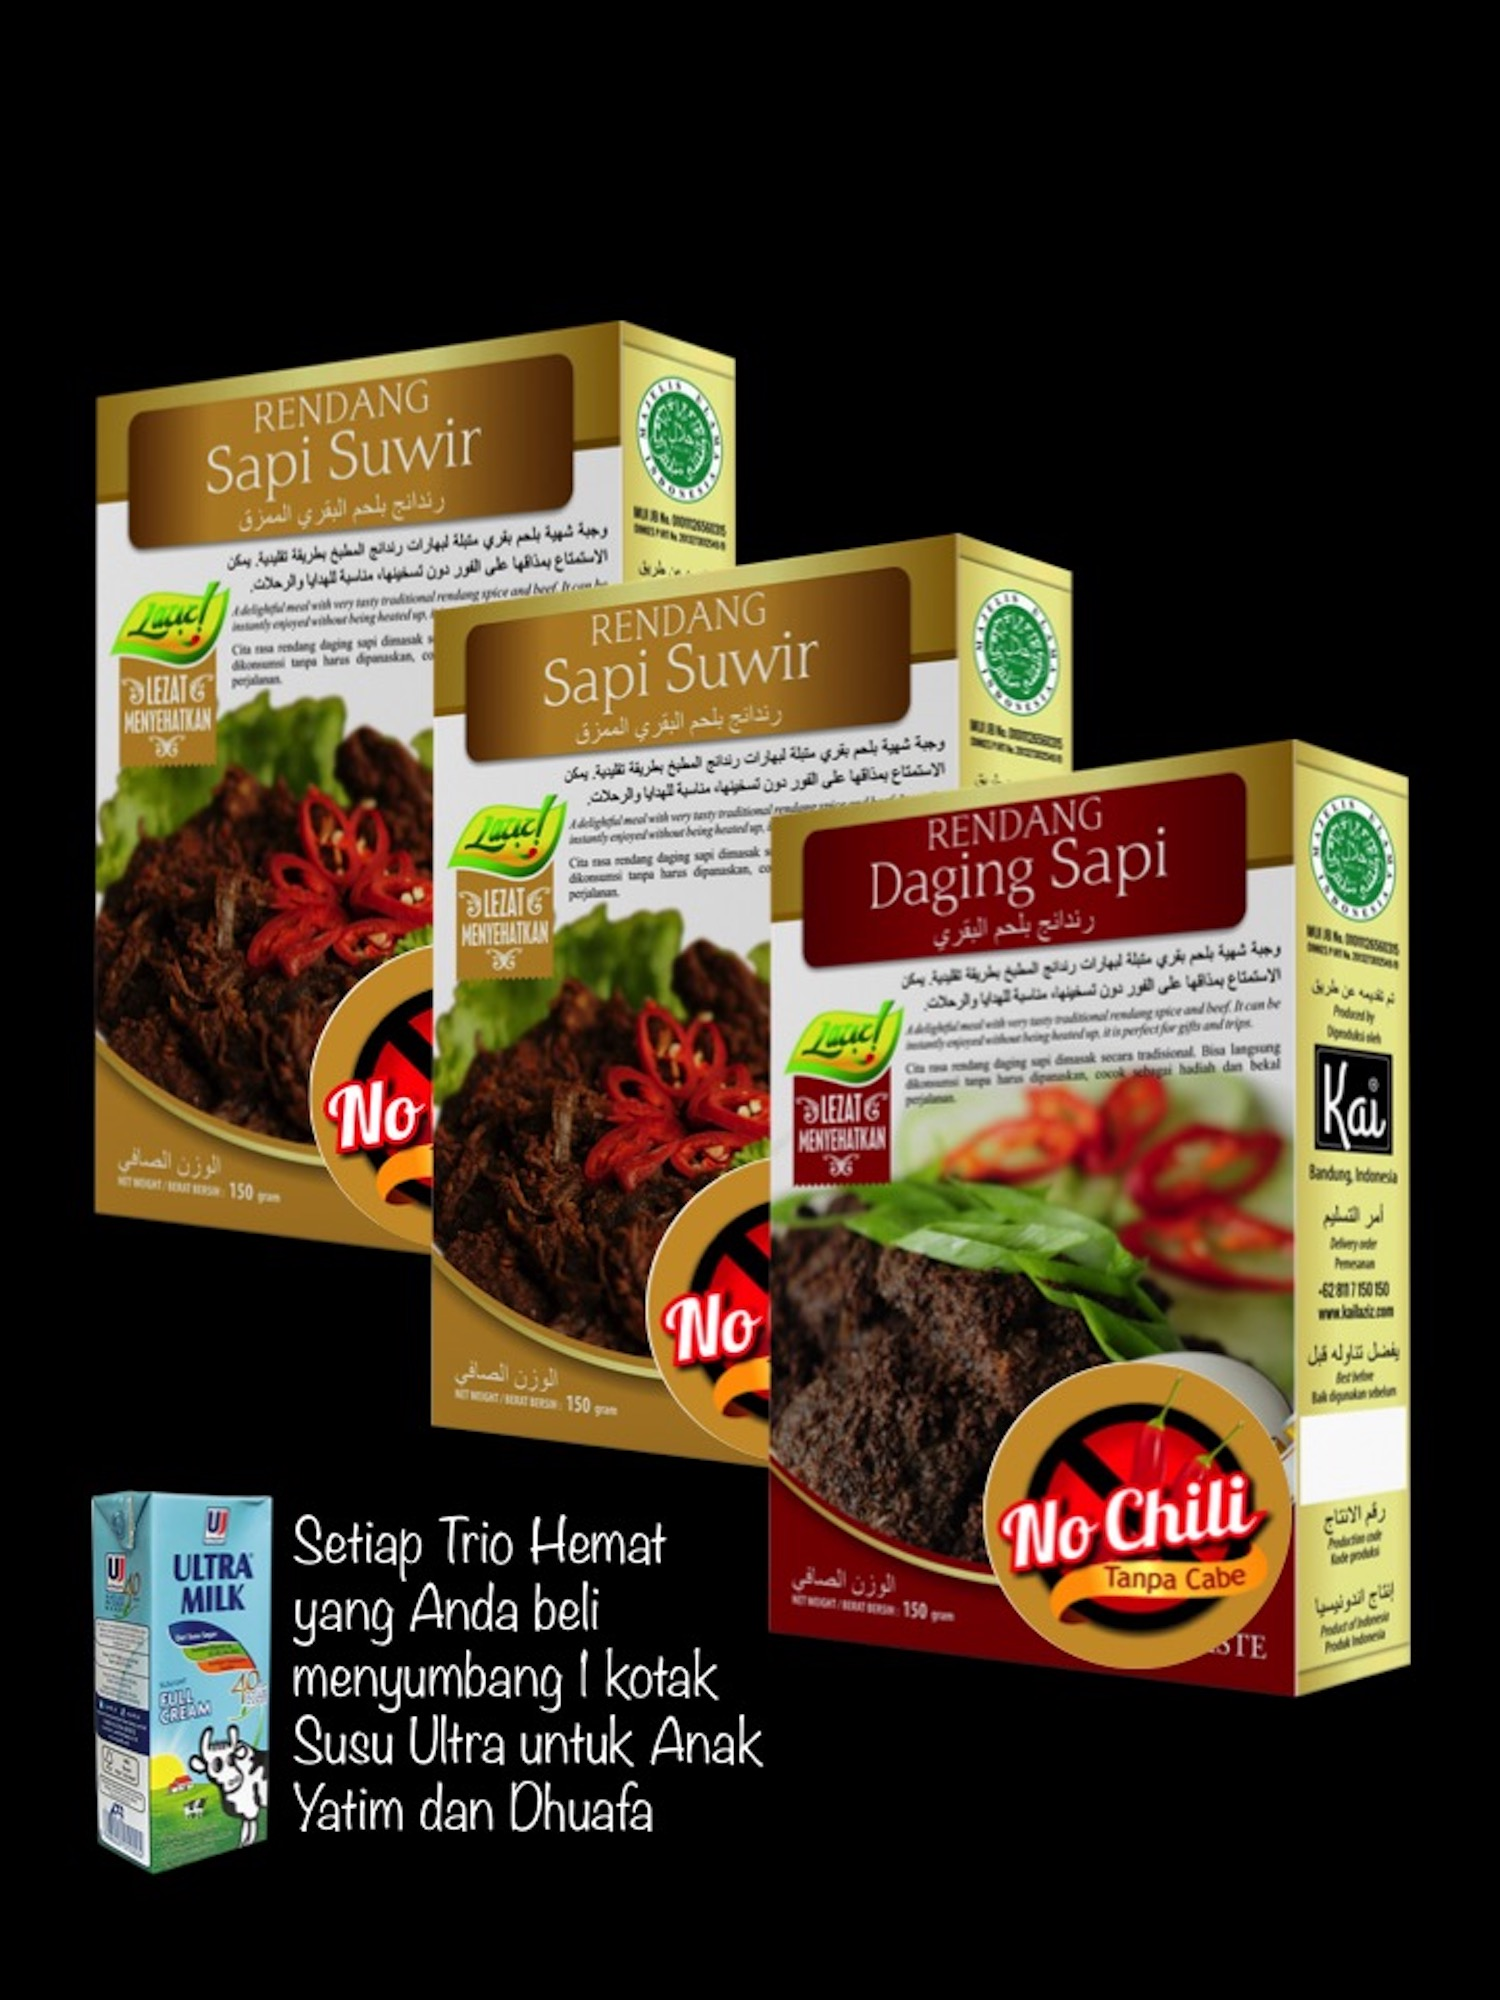 KID MEALS 2 RENDANG DAGING SAPI NO CHILI 1 RENDANG SAPI SUWIR NO CHILI KAI FOOD 450GR